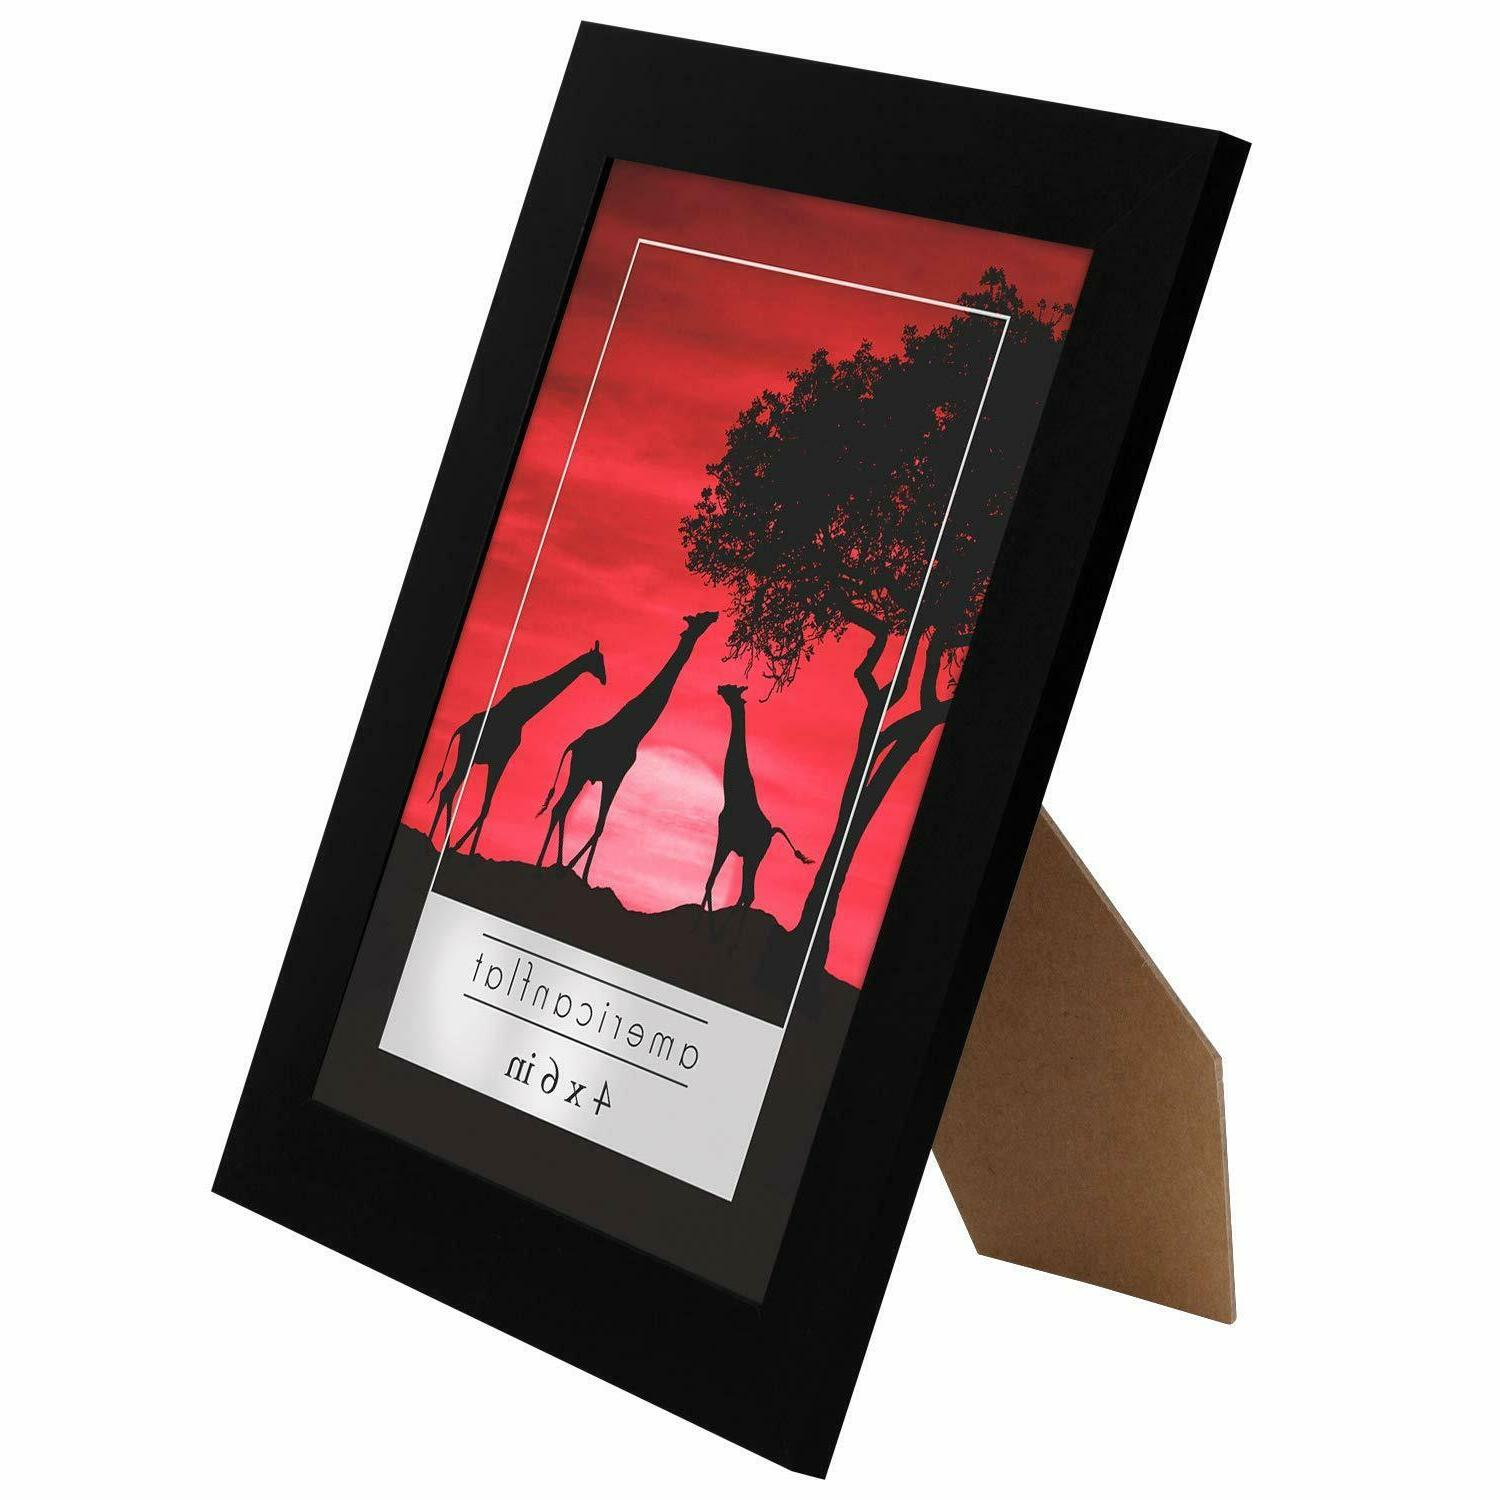 Americanflat 4x6 Picture Frames Display